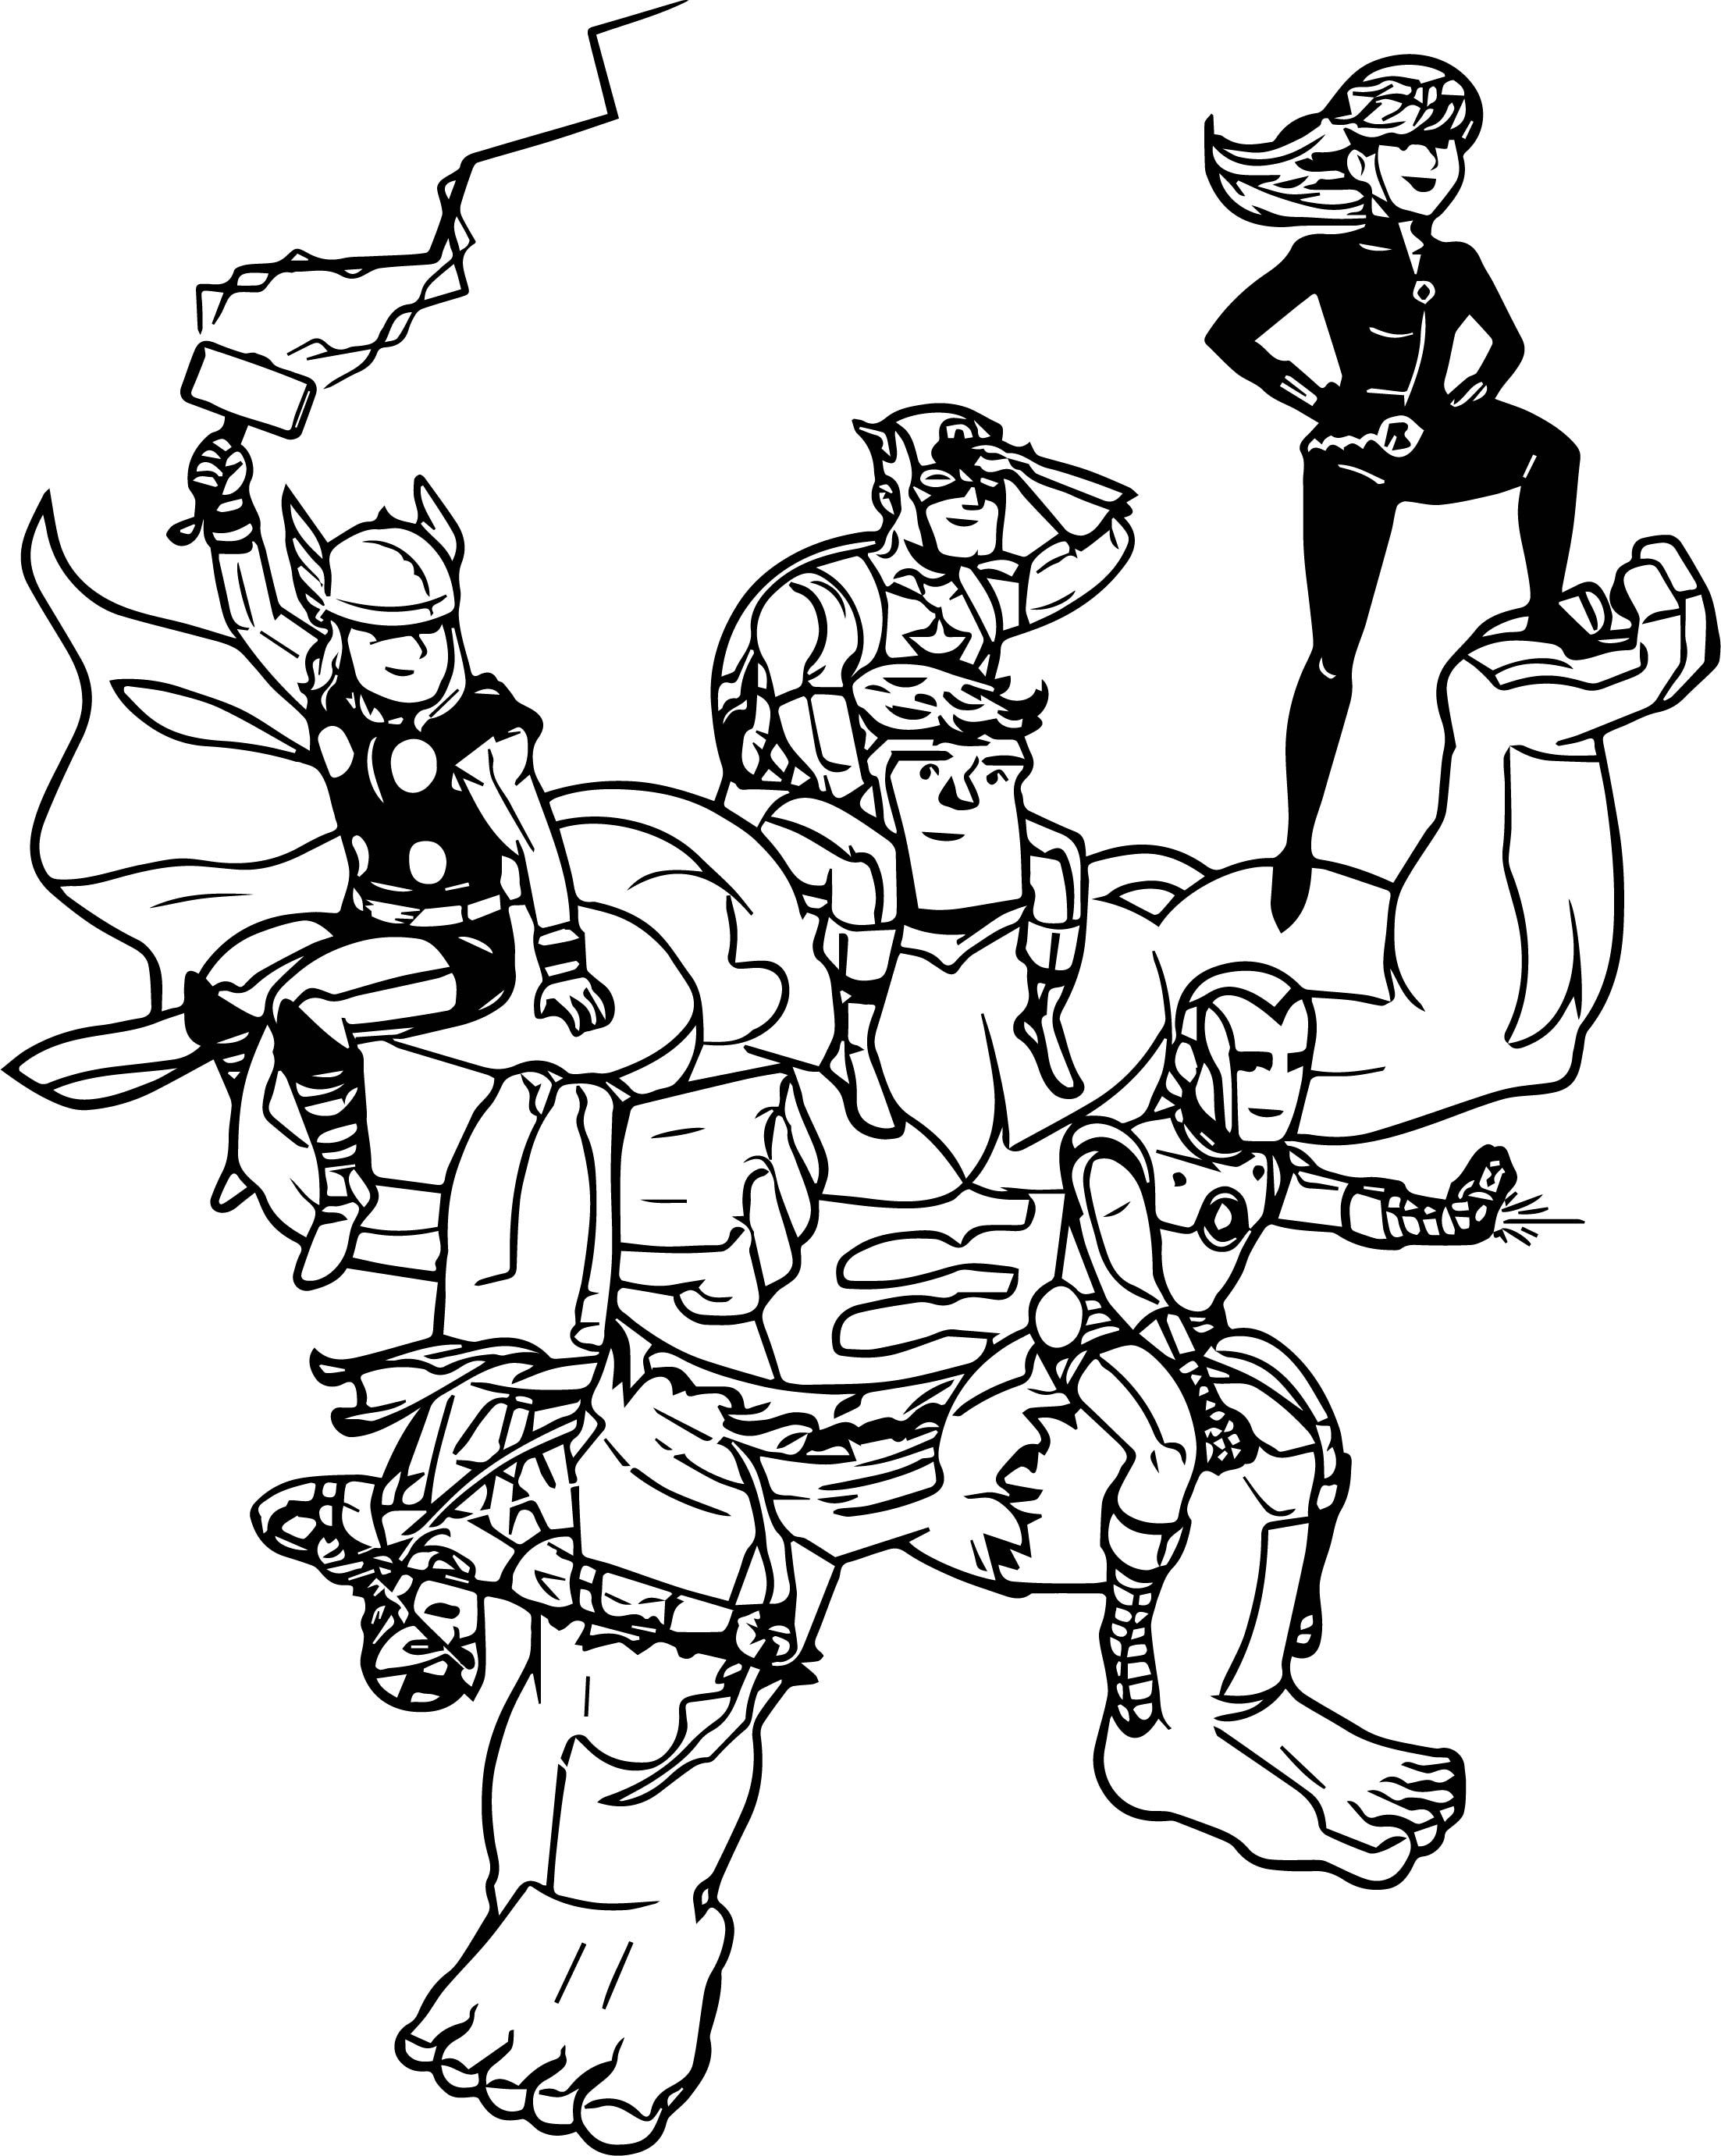 avengers characters coloring pages marvel39s avengers age of ultronofficial art showcase pages coloring characters avengers